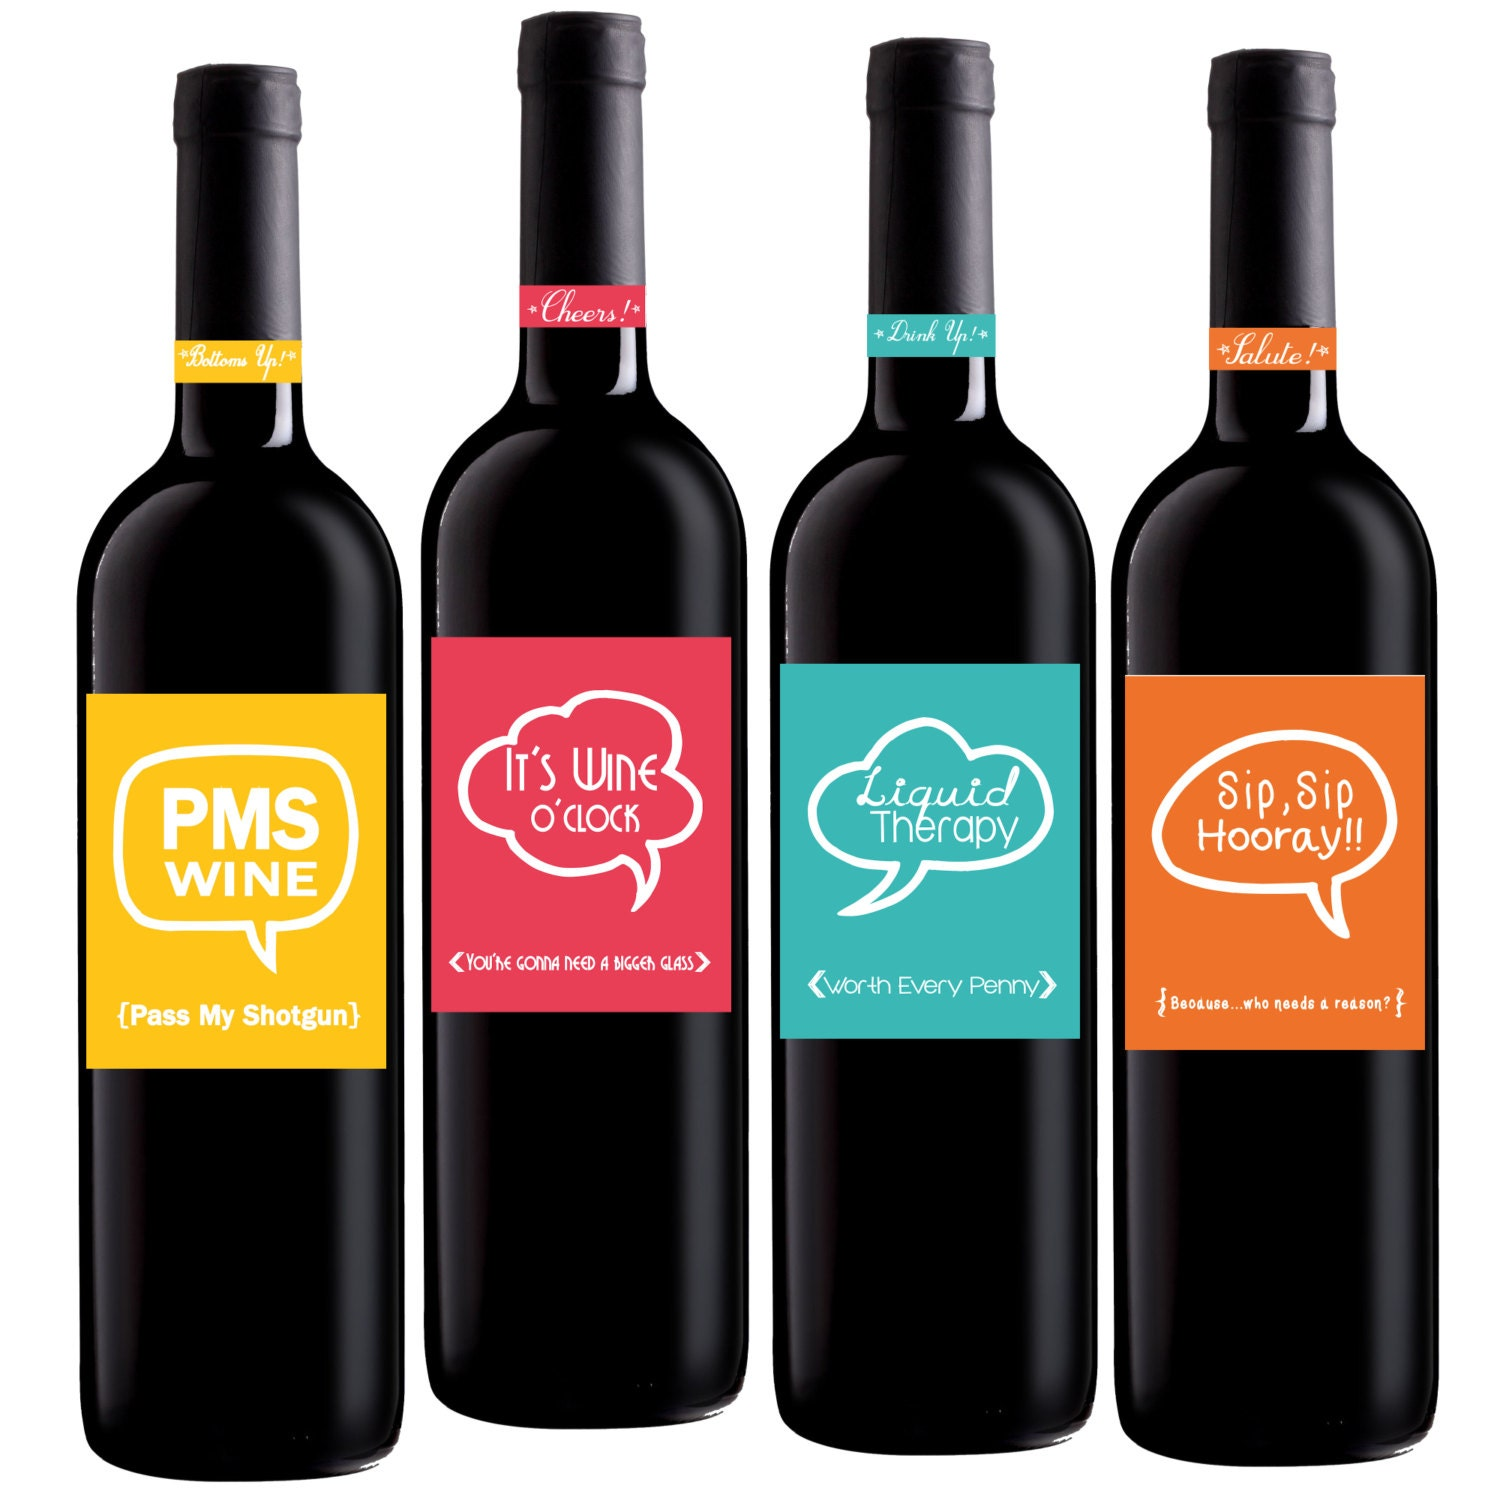 It is a graphic of Crush Wine Bottles and Labels